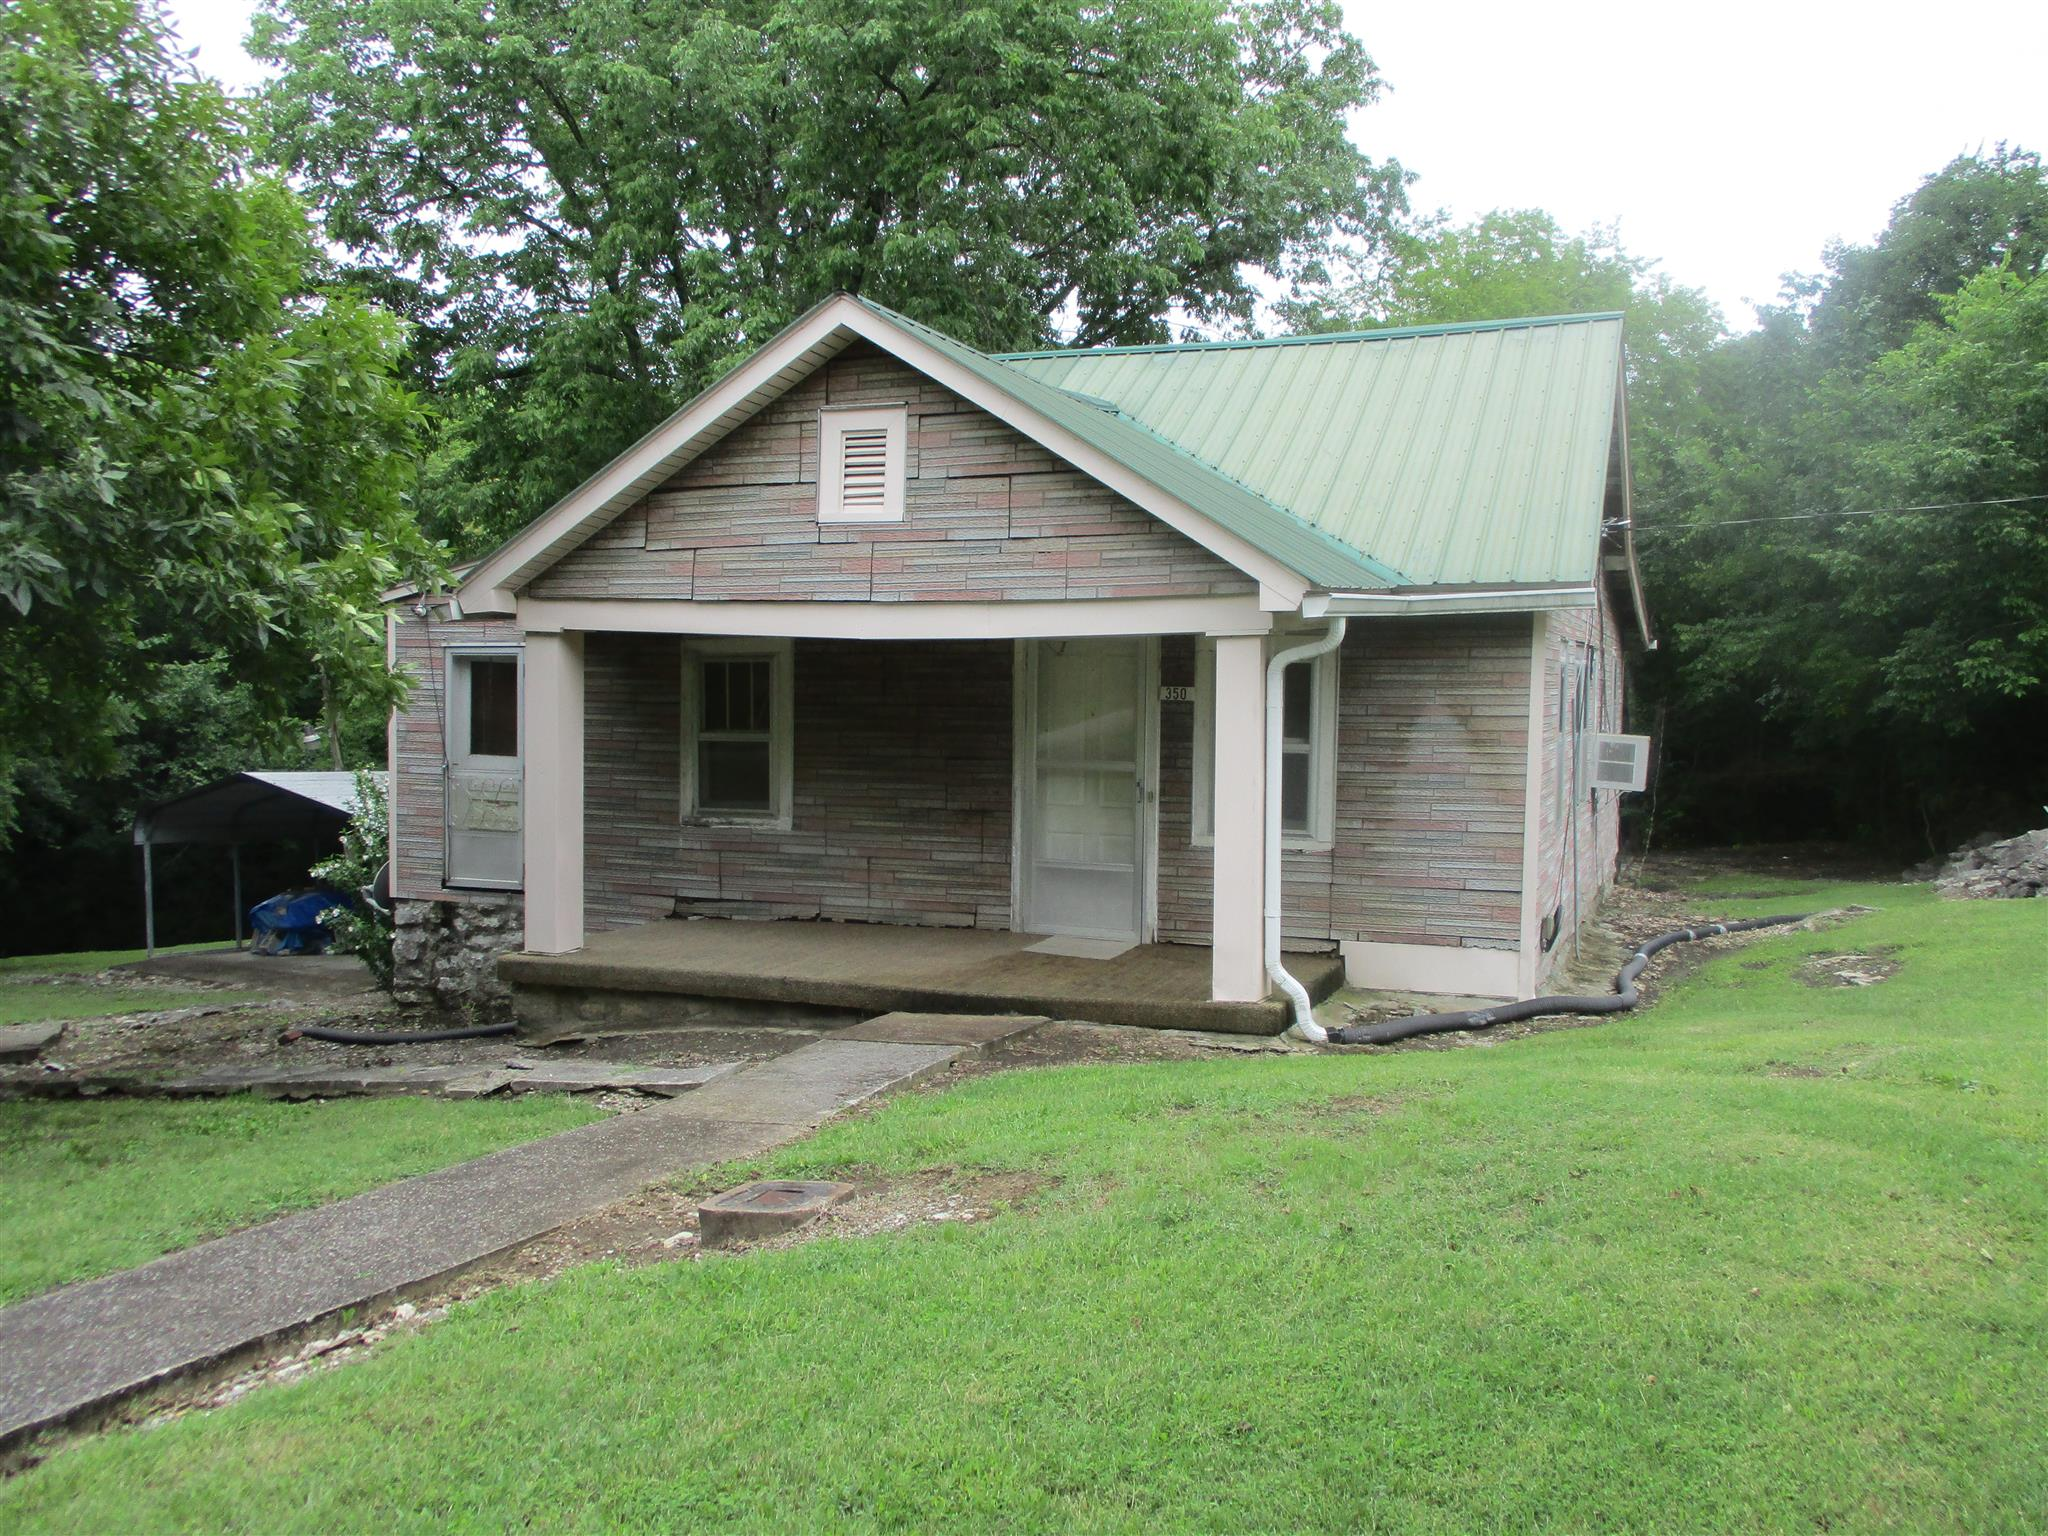 350 Linwood Rd, Watertown, TN 37184 - Watertown, TN real estate listing